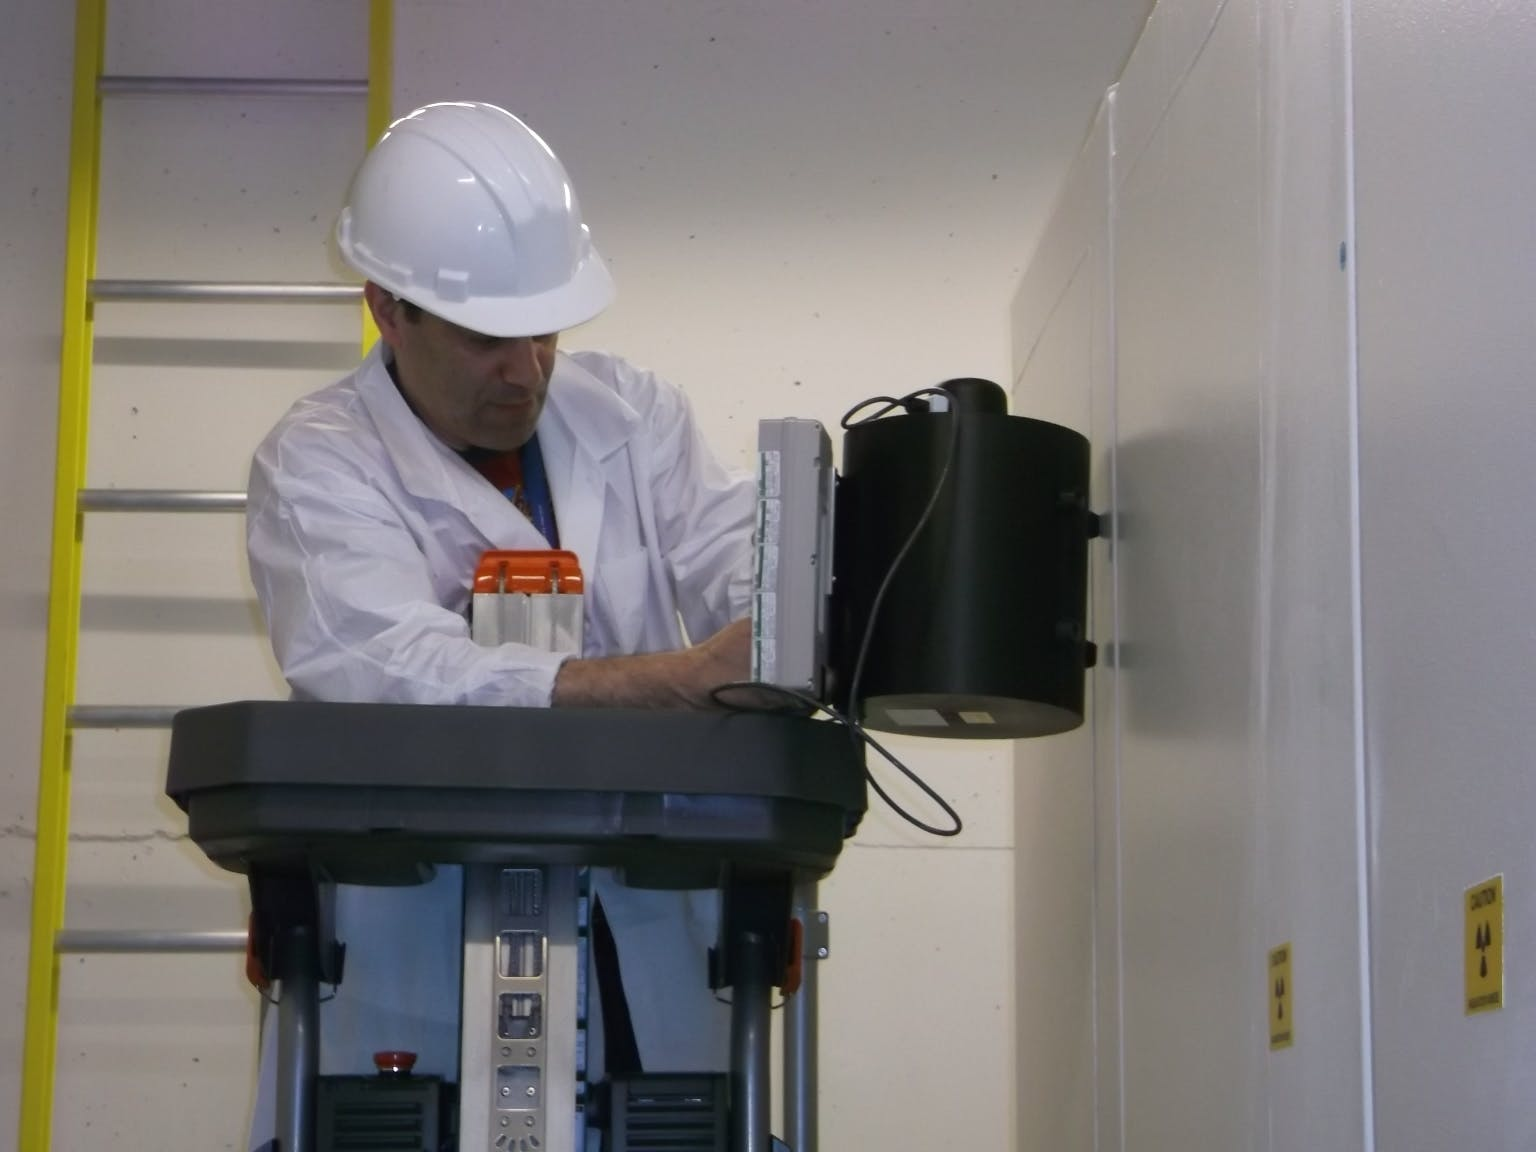 Radiation Safety Officer Monitoring Cyclotron